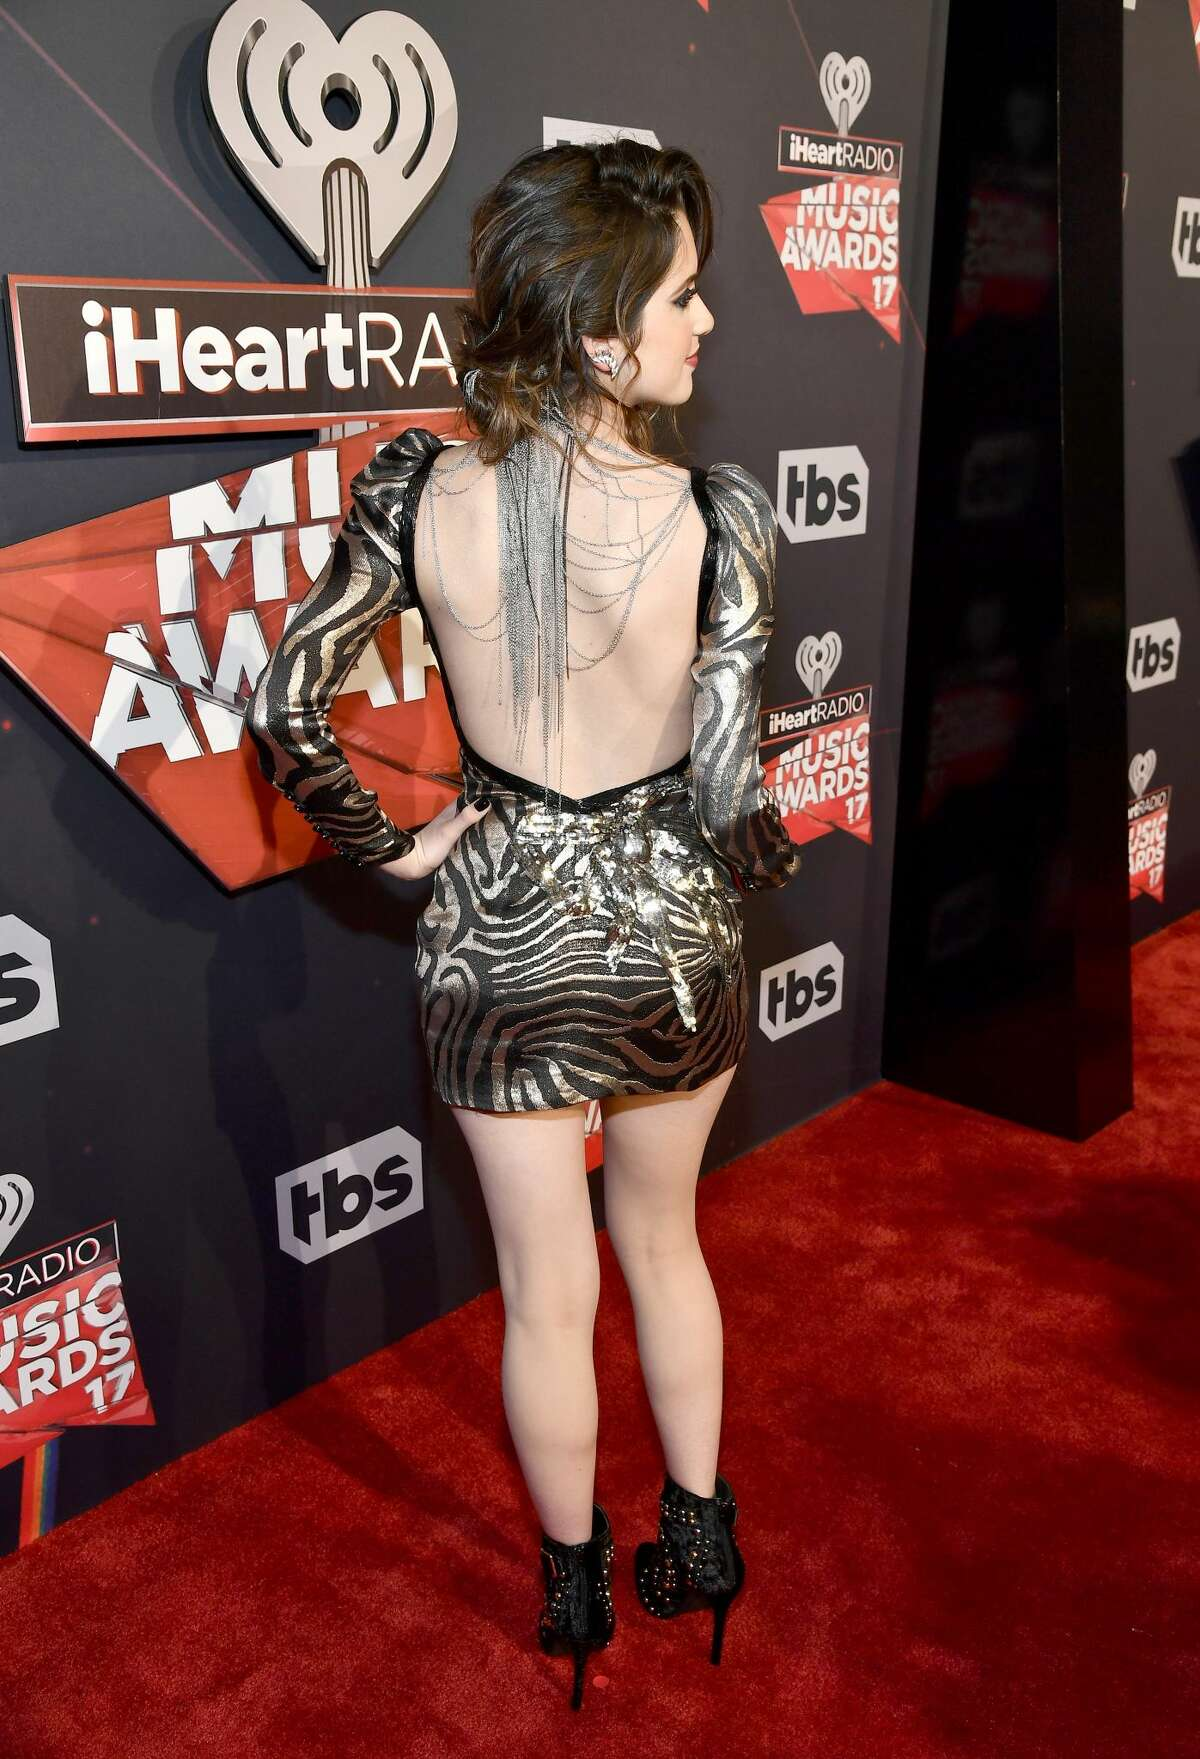 Laura Marano attends the 2017 iHeartRadio Music Awards on March 5, 2017 in Inglewood, California. Keep clicking to see these red carpet looks that would for sure get you kicked out of the prom.